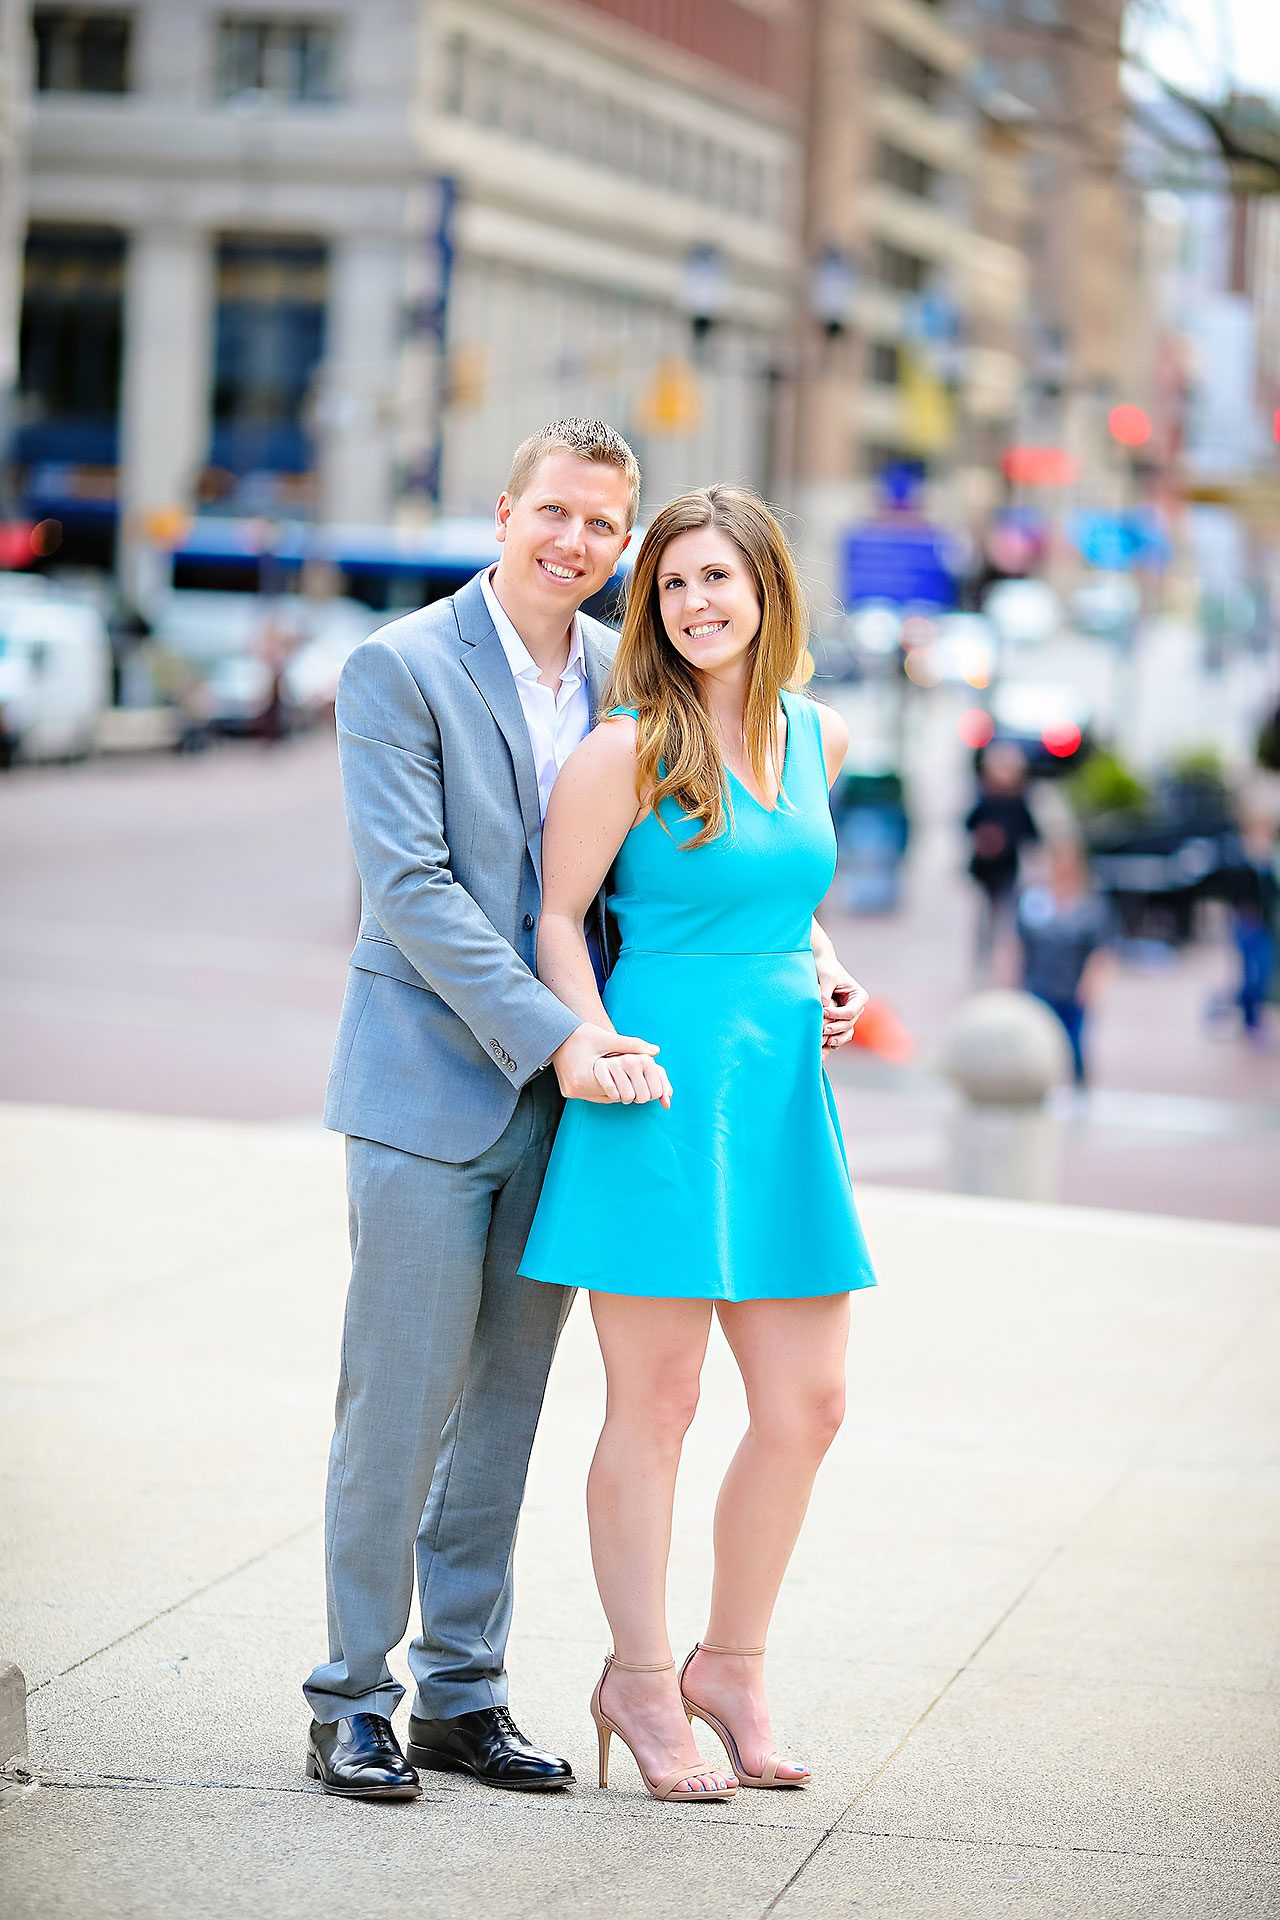 Chelsea Jeff Downtown Indy Engagement Session 128